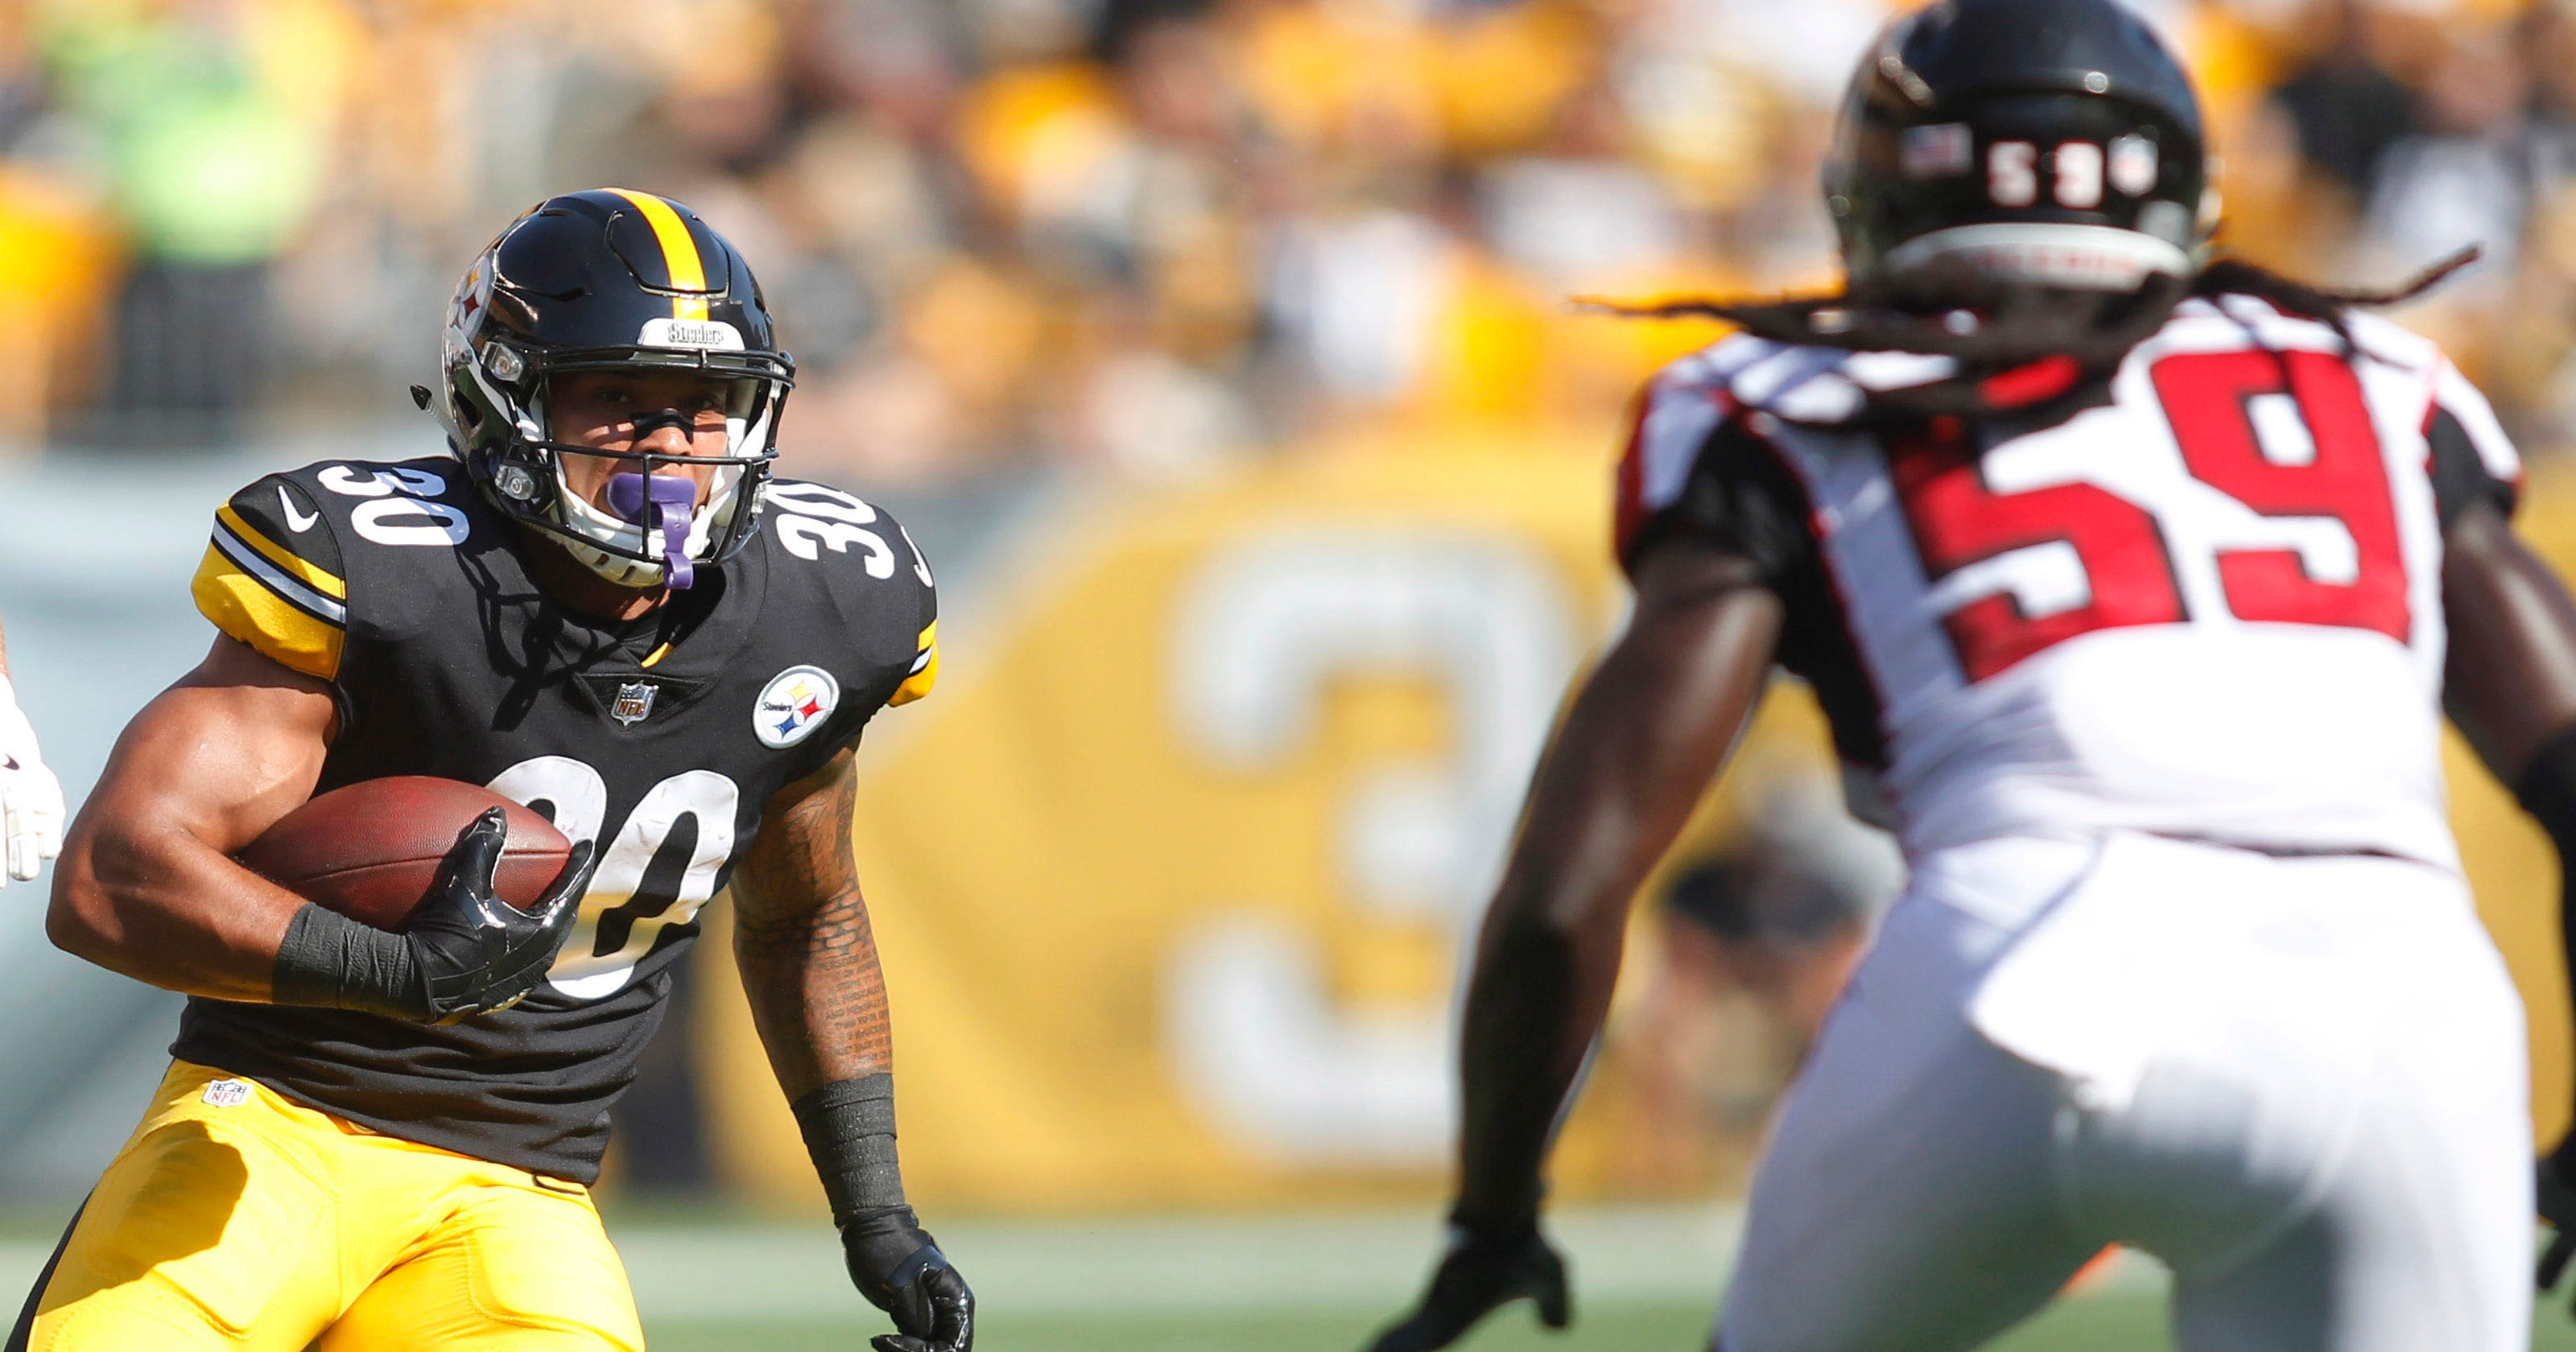 ff61a8ac875 Rookie James Conner stars in Steelers  win over Falcons